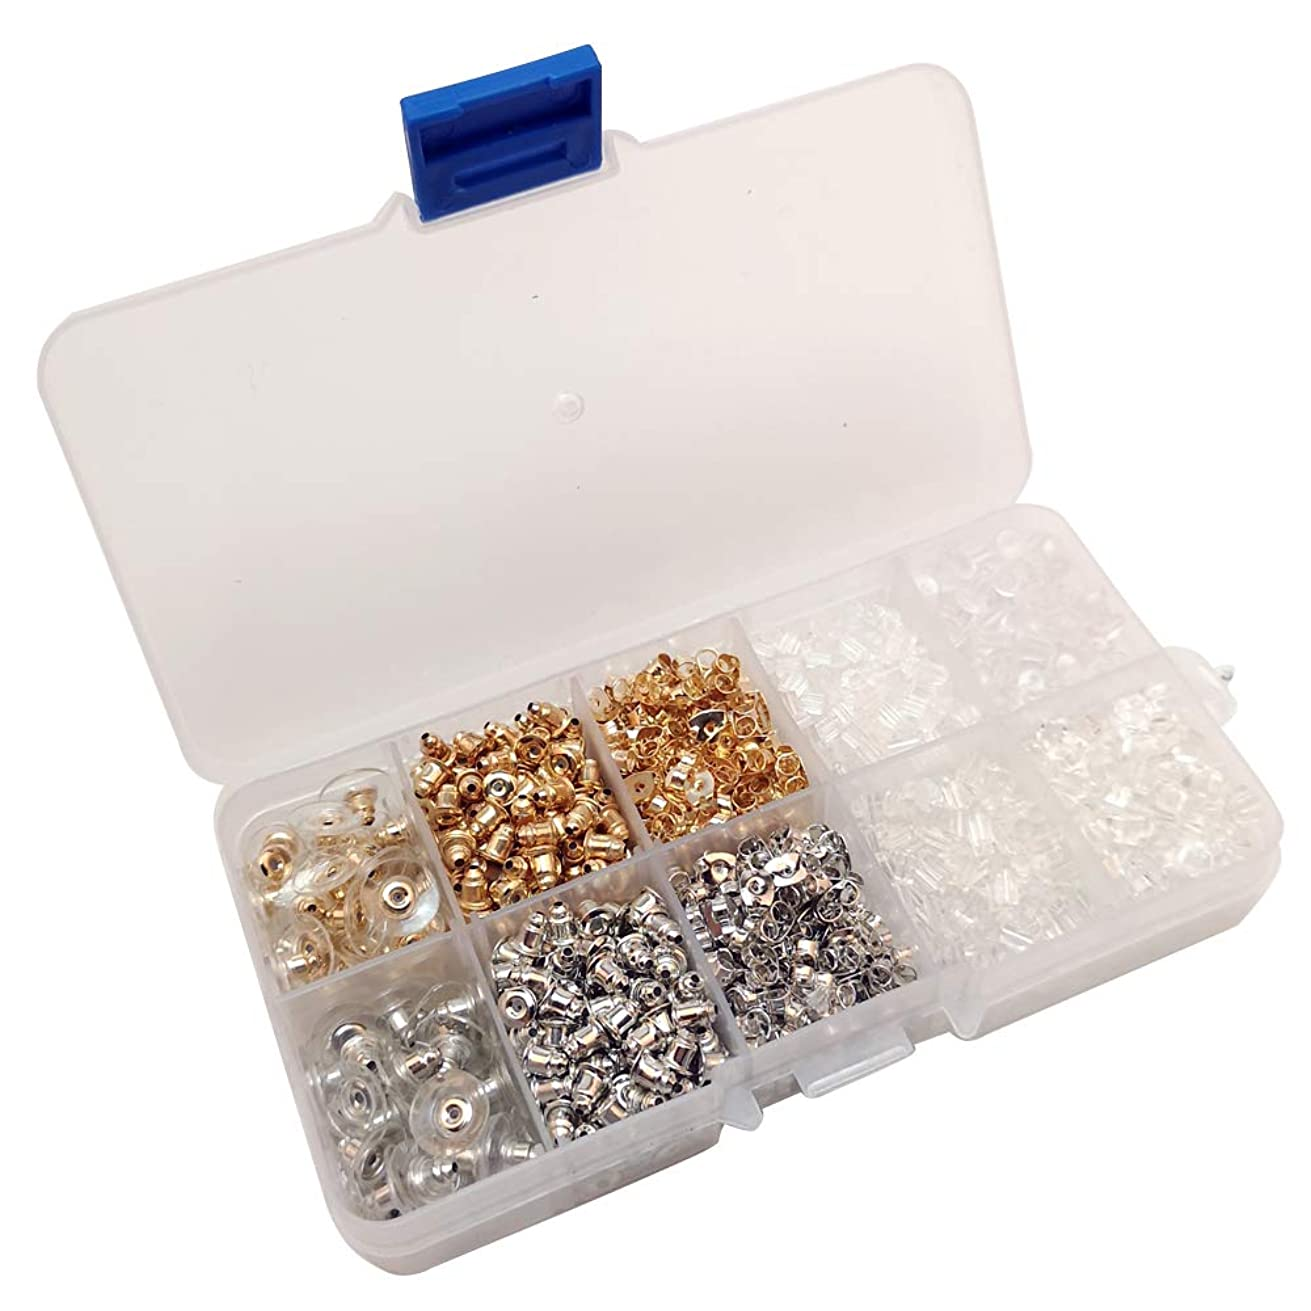 Chenkou Craft Assorted 10 Styles 1530pcs Earring Backs Earring Back Clips Bullet Shape Earring Backs Butterfly Metal Rubber Secure Earring Backs for Safety (Mix, Mix)